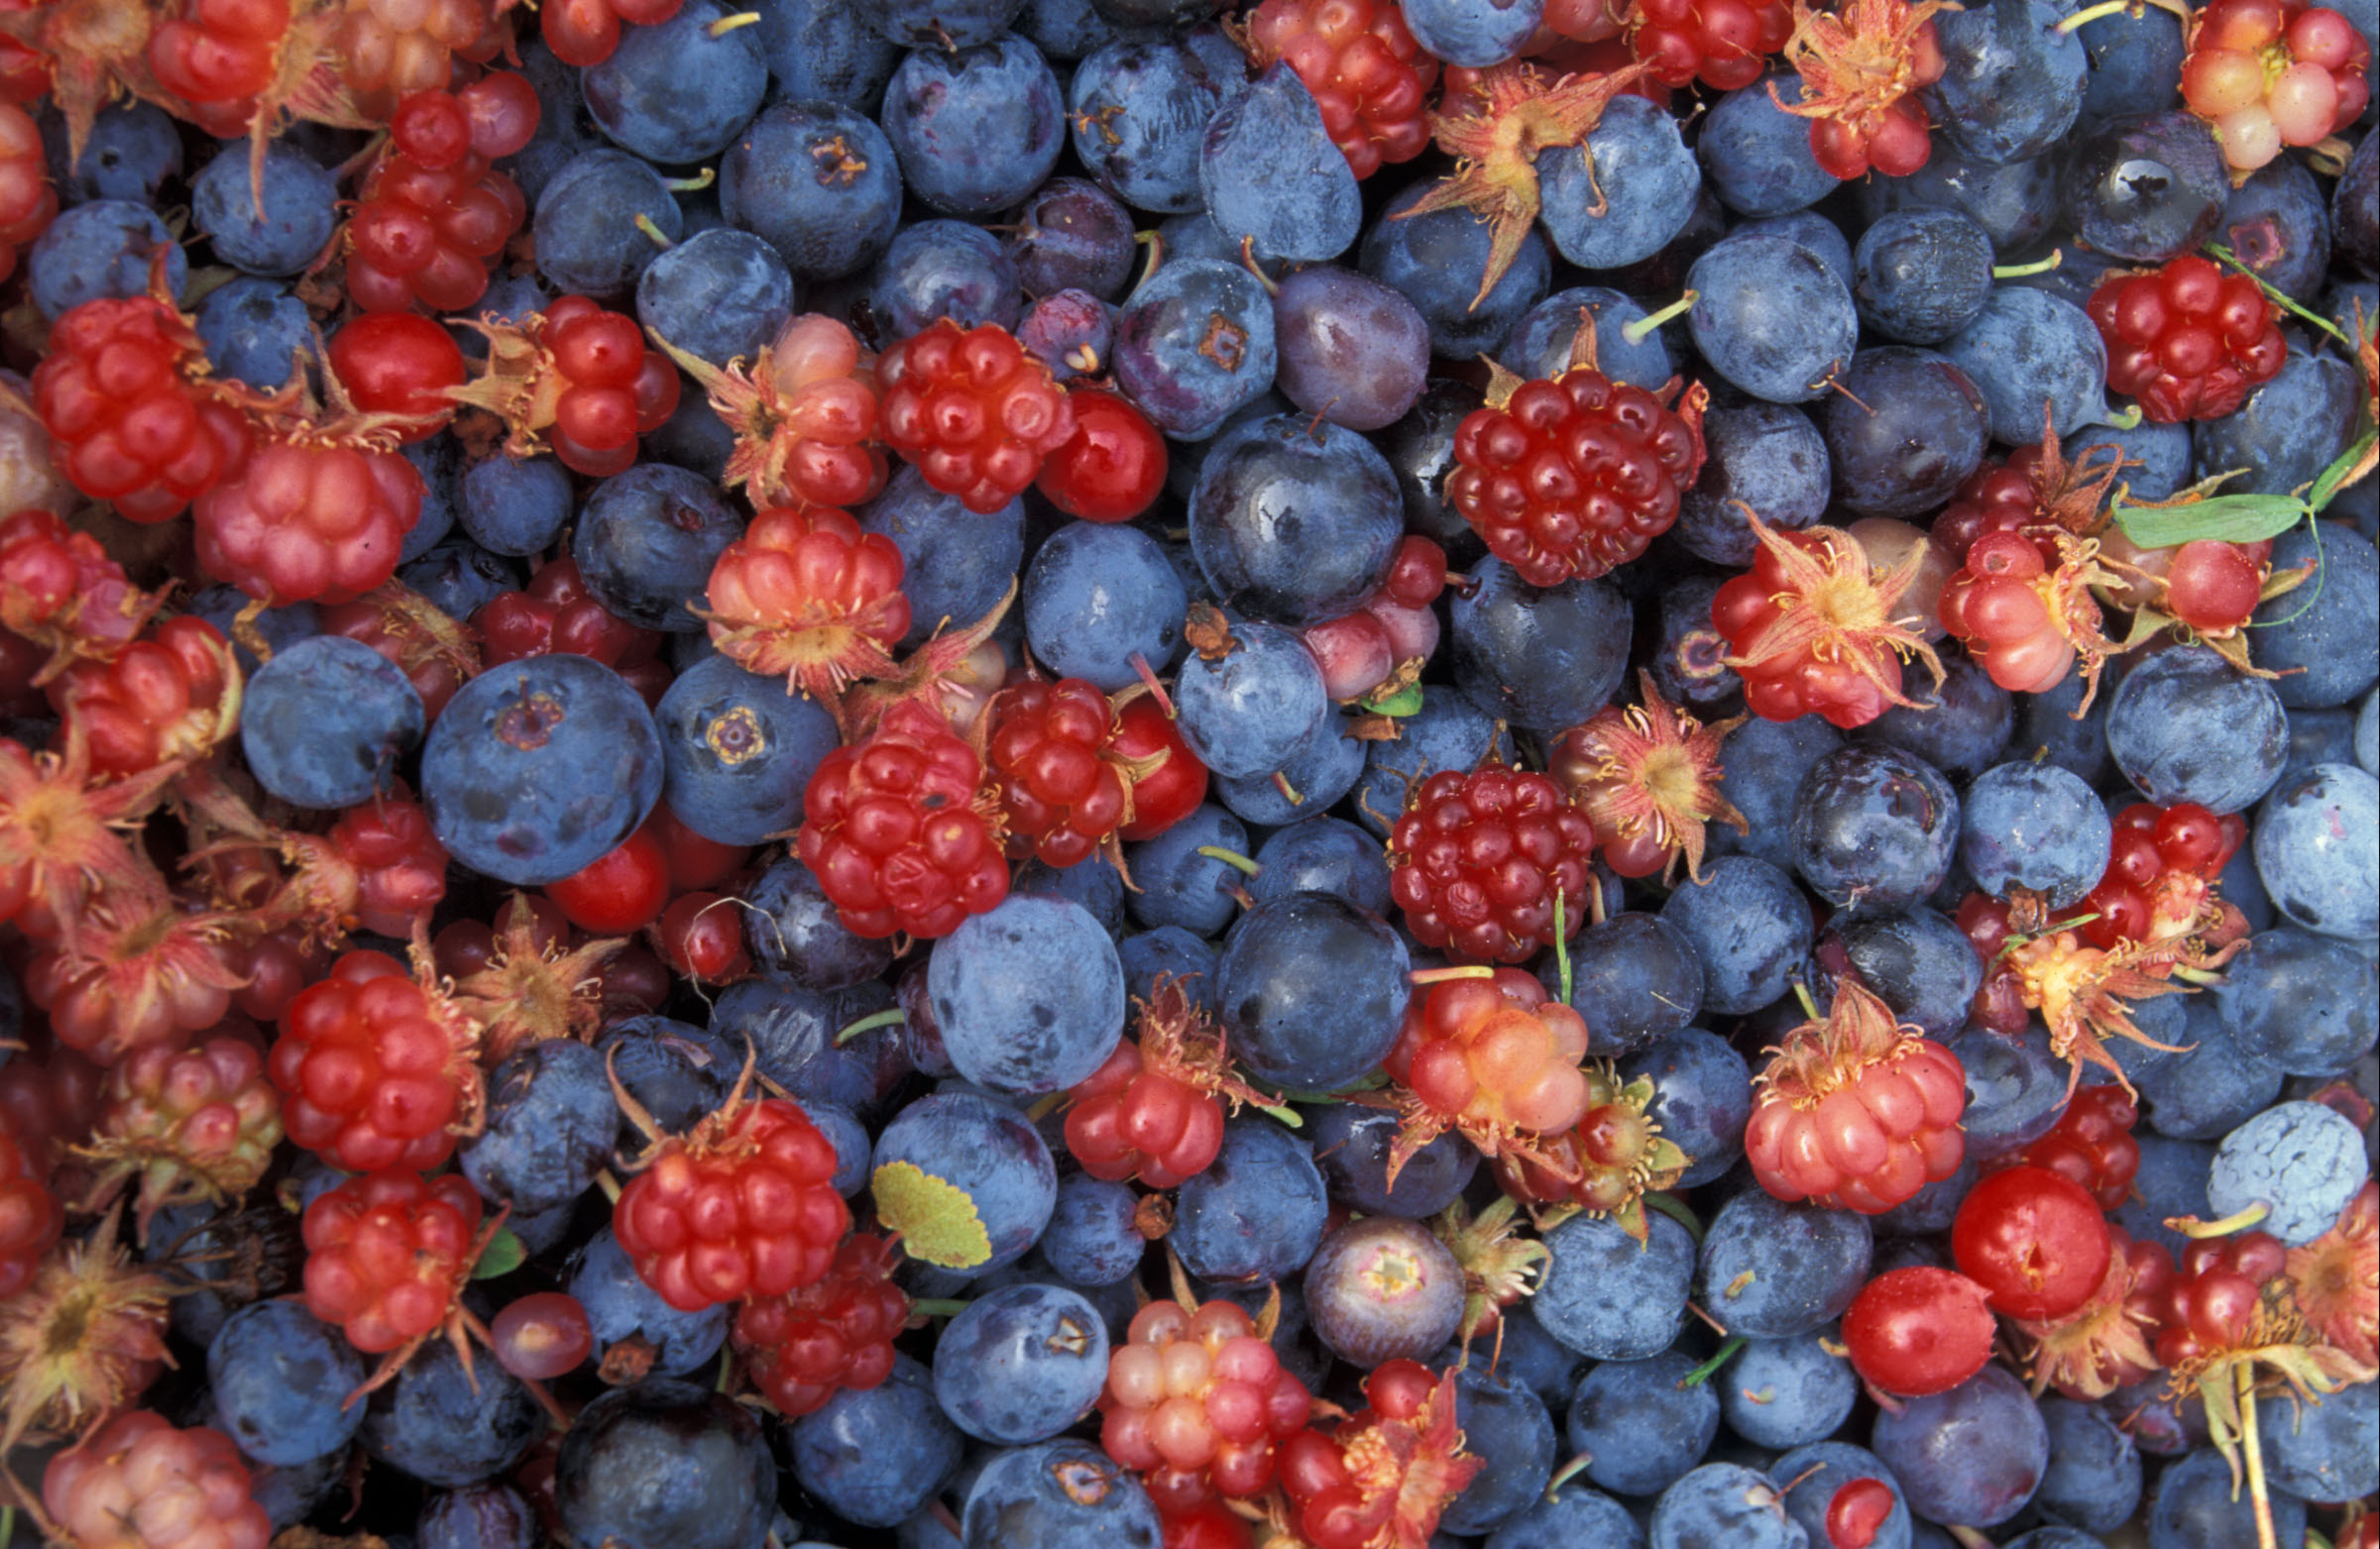 Description alaska wild berries